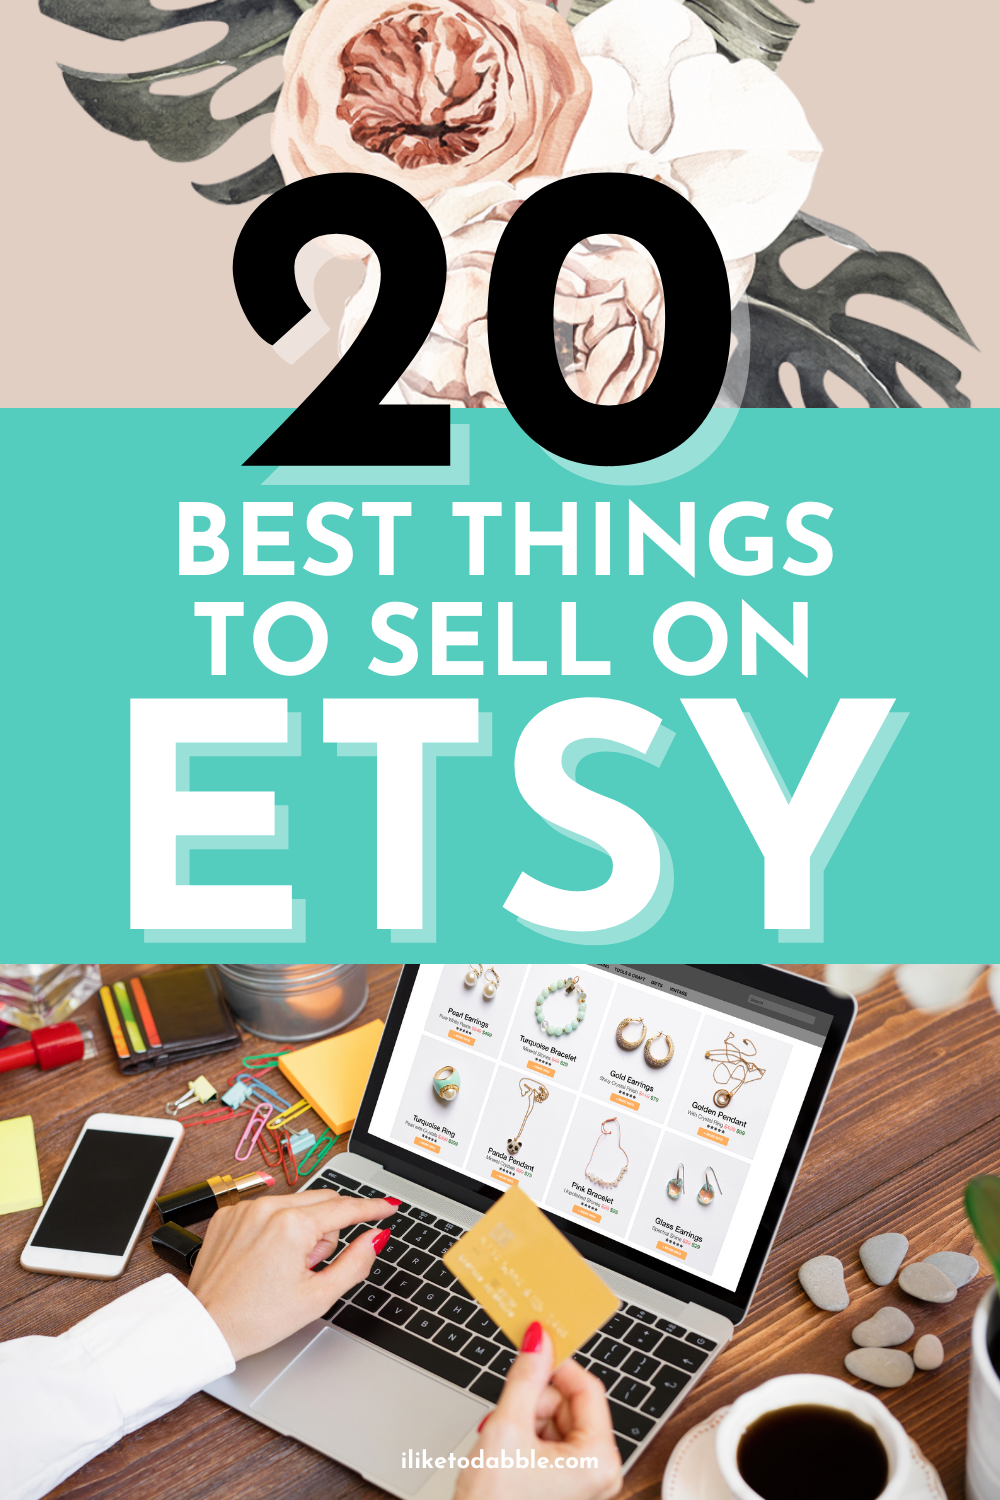 best things to sell on etsy pinnable image with etsy items on a laptop on title text overlay